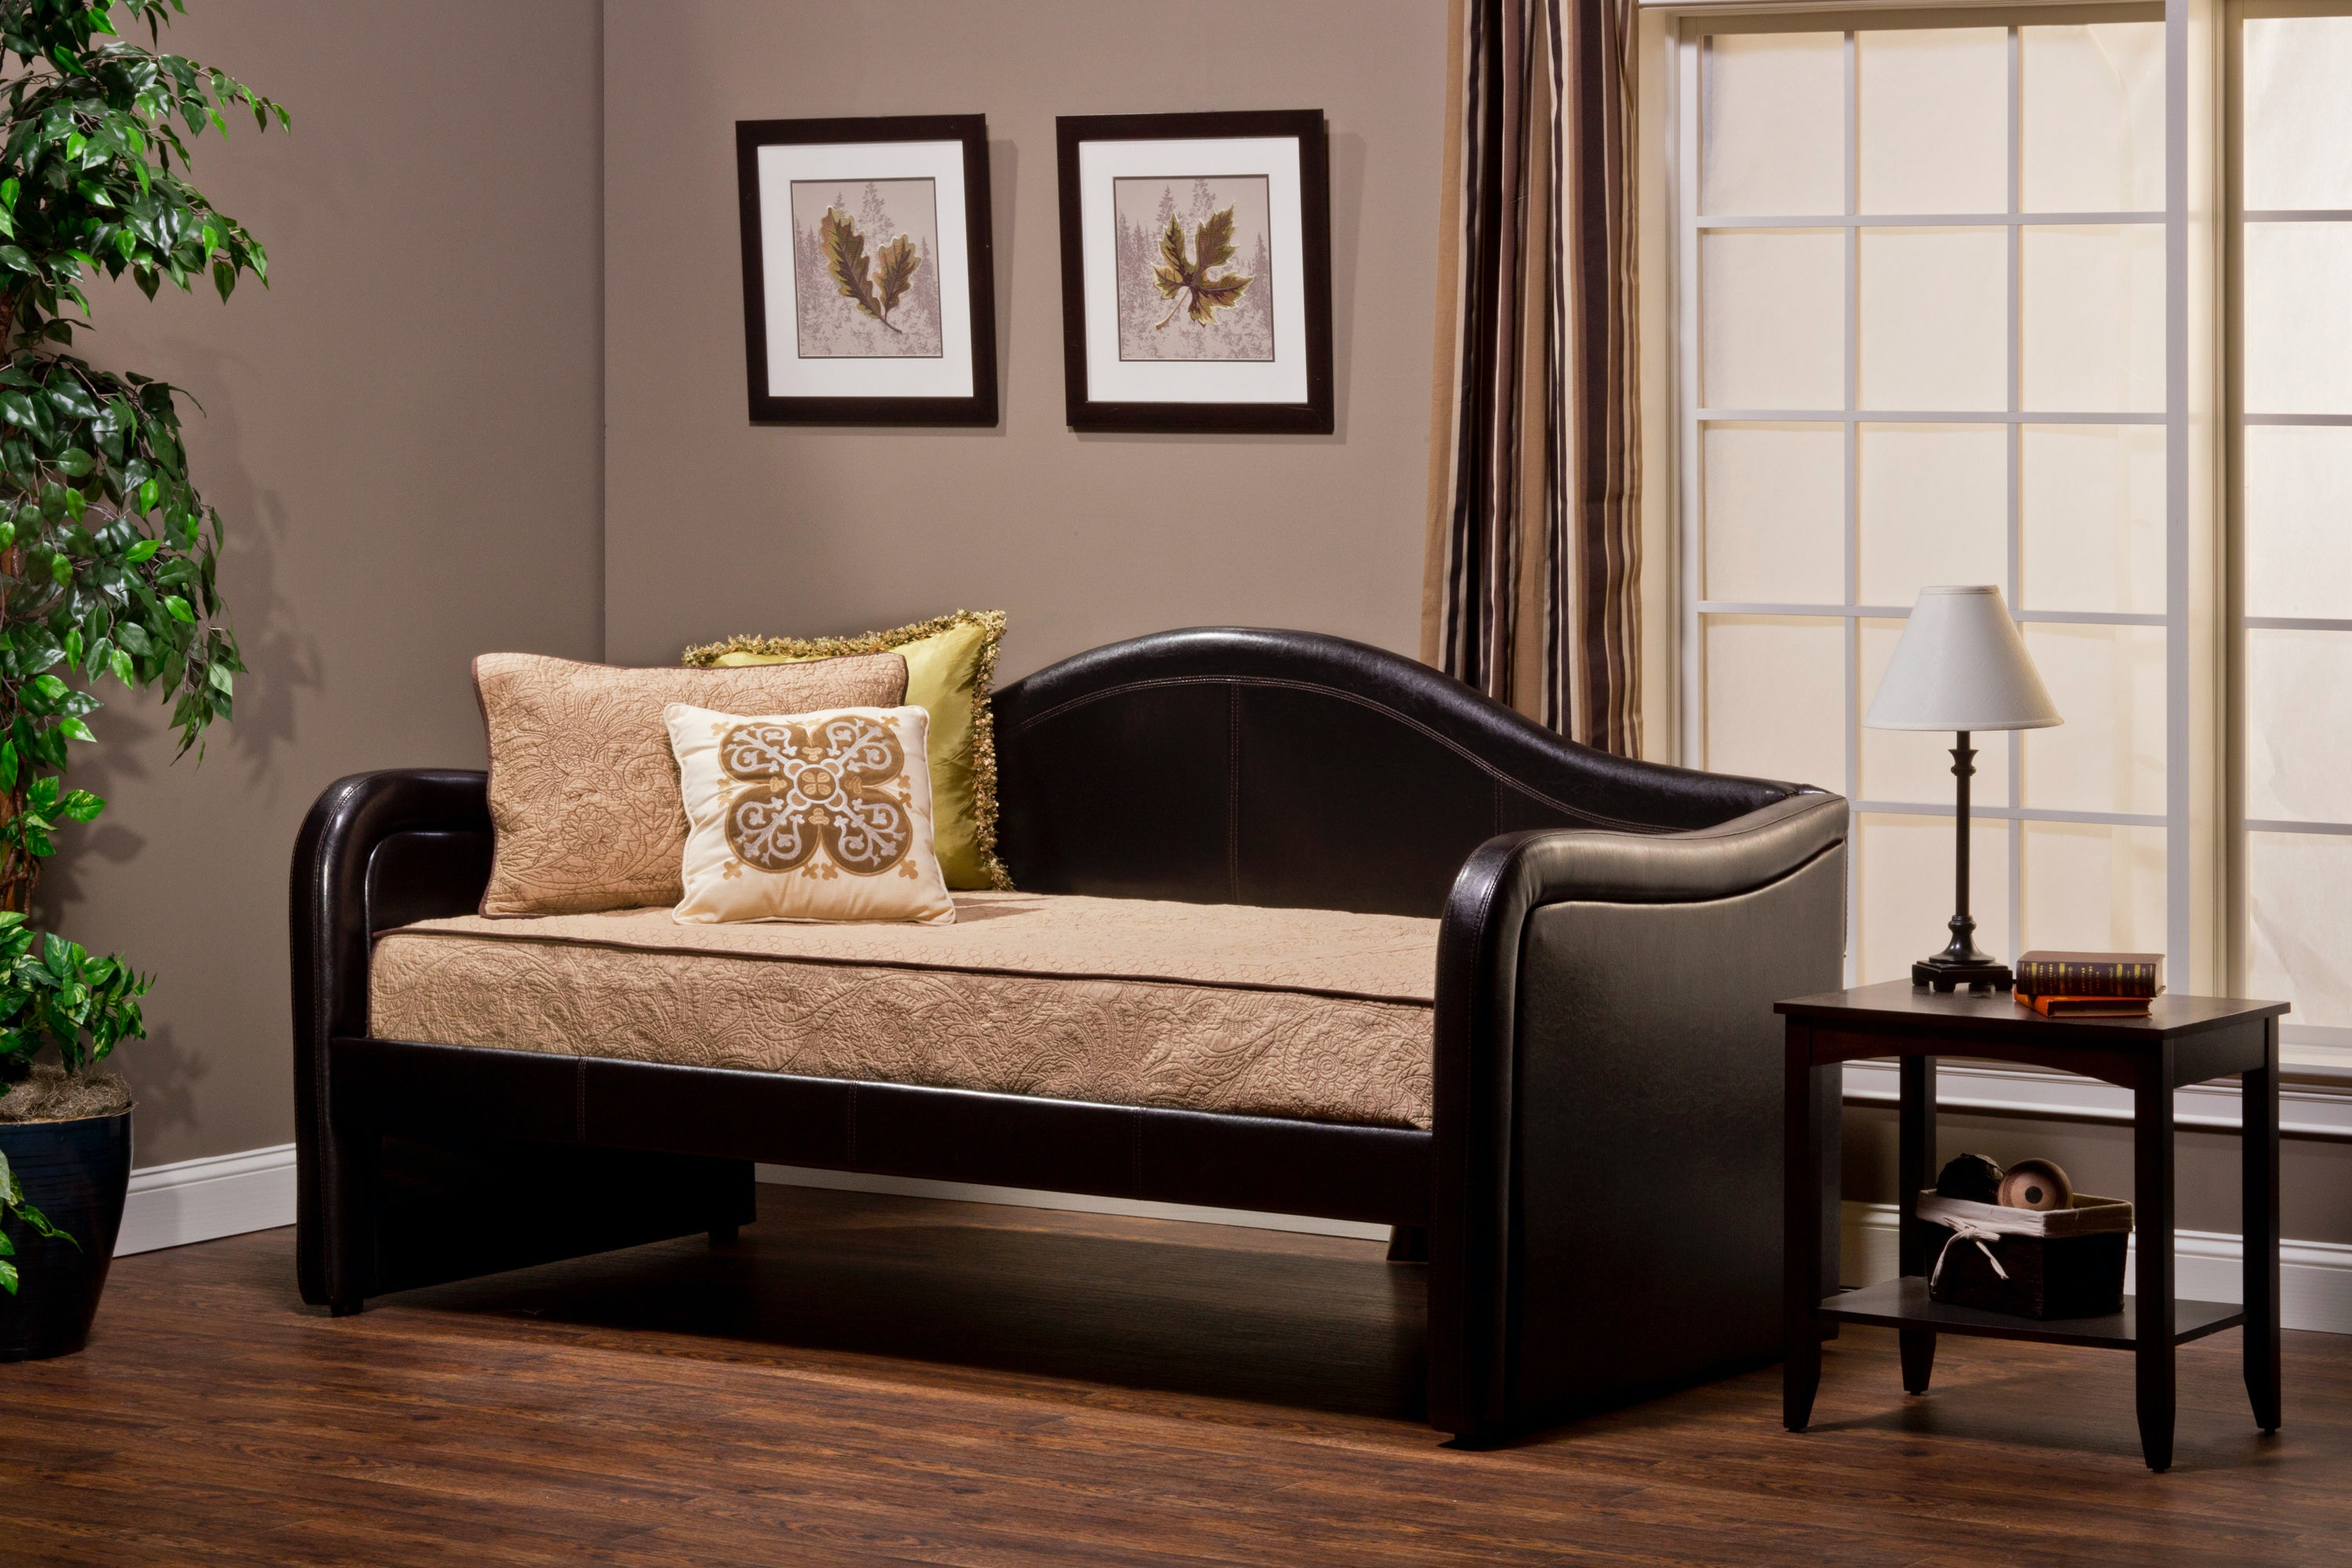 Great Hillsdale Furniture Brenton Daybed 1719DB ...